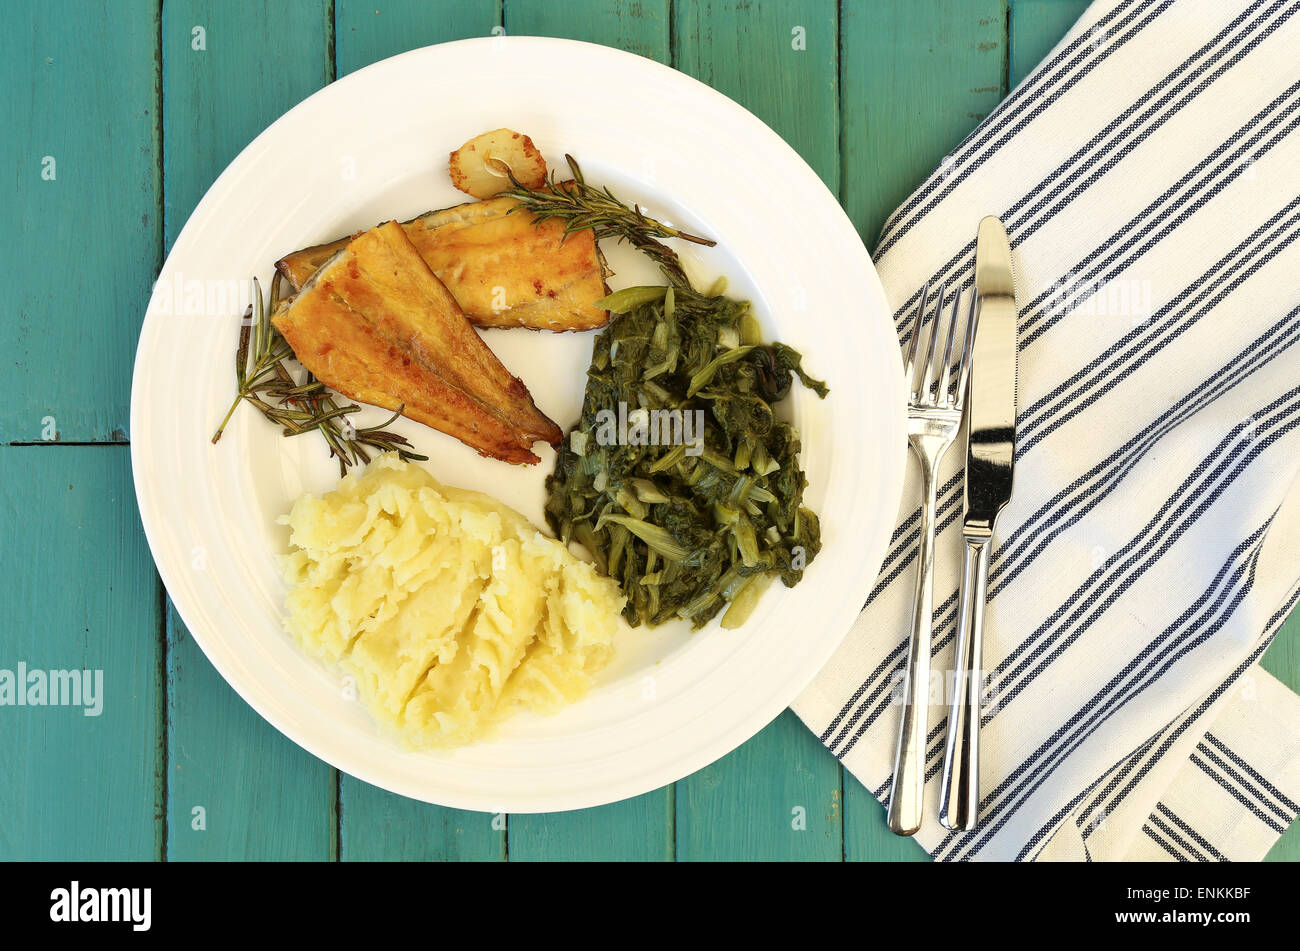 Grilled smoked haddock fillets with rosemary brunches mash potato and swiss chard on white plate, striped cloth - Stock Image